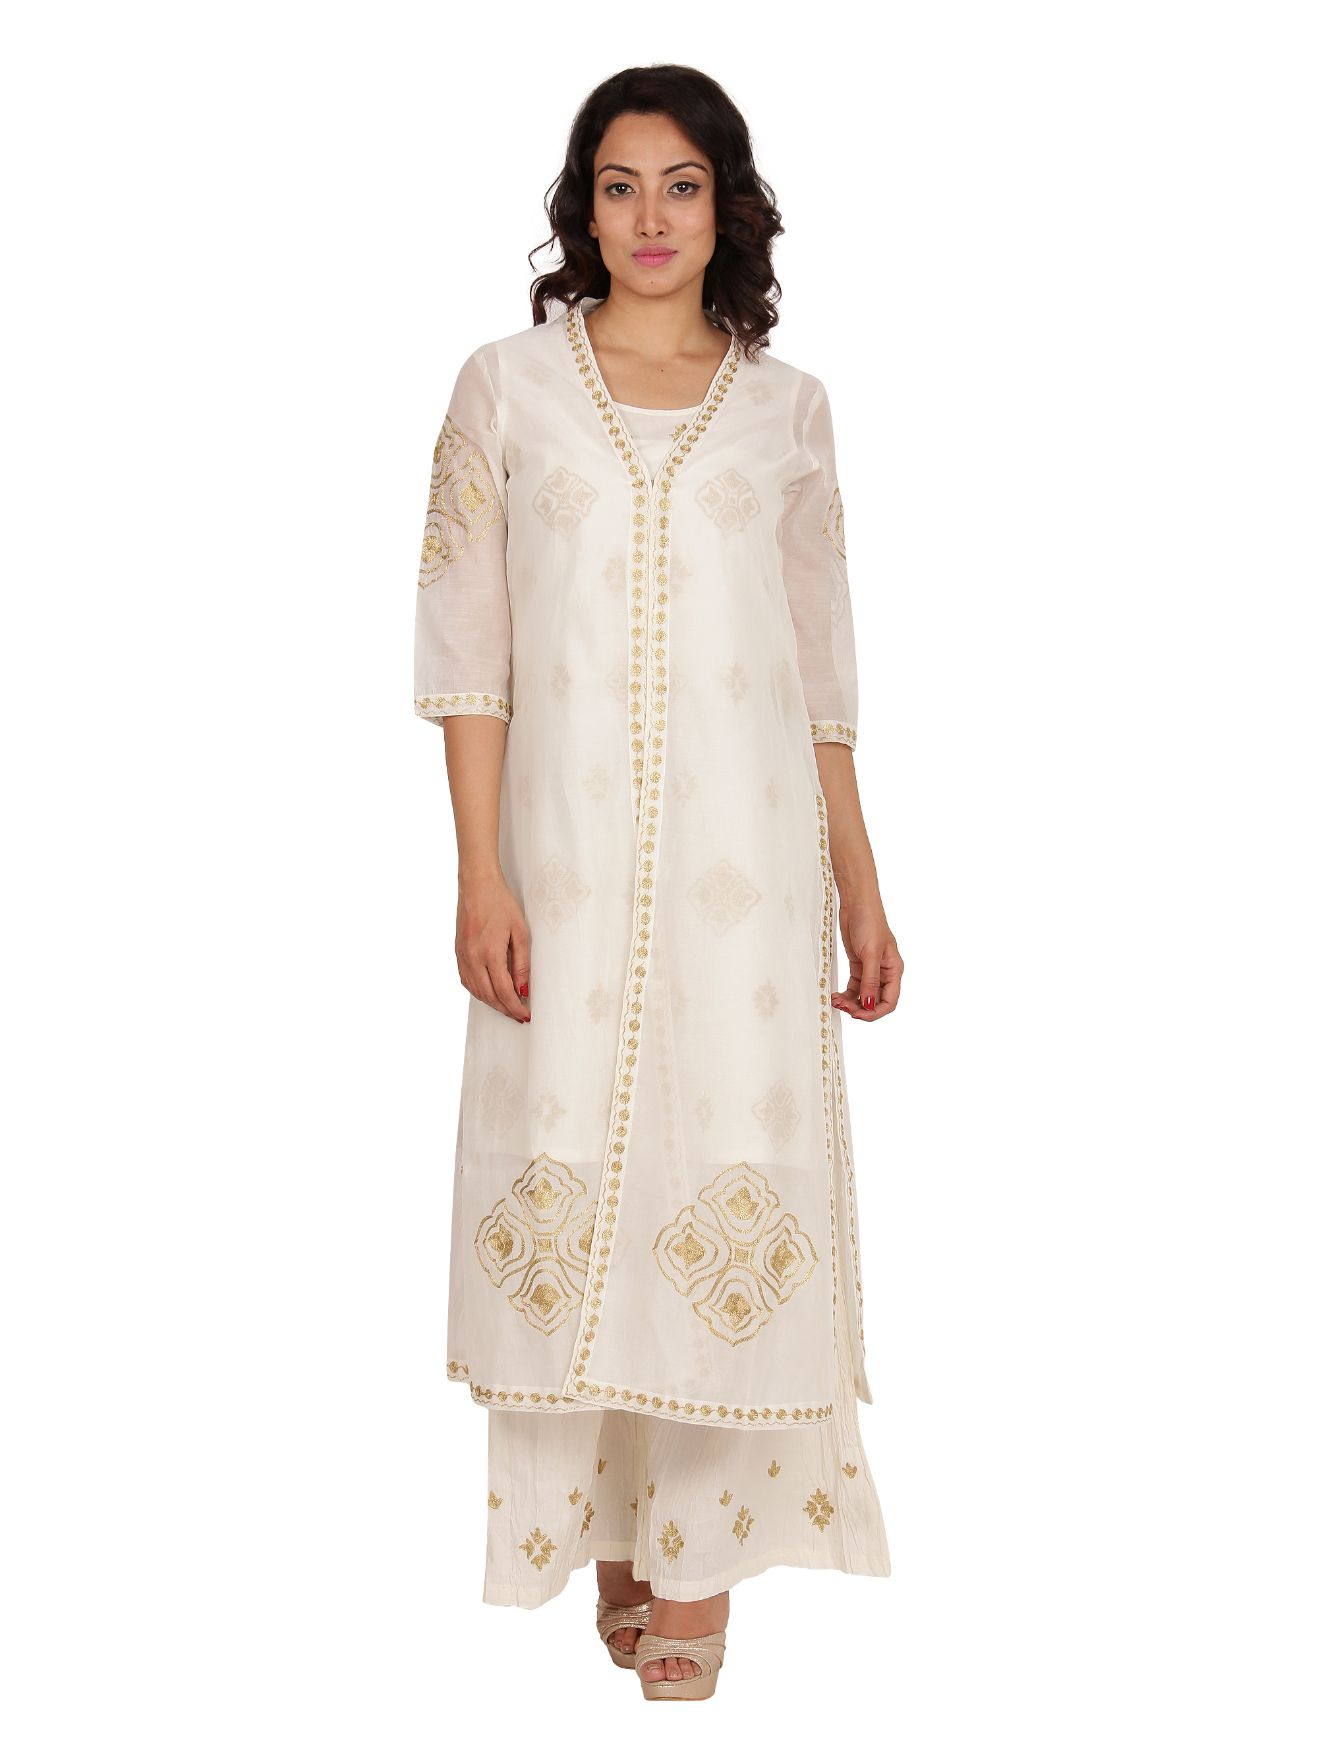 Neemrana Set of 3 - Chanderi Jacket + Kurti + Palazzos